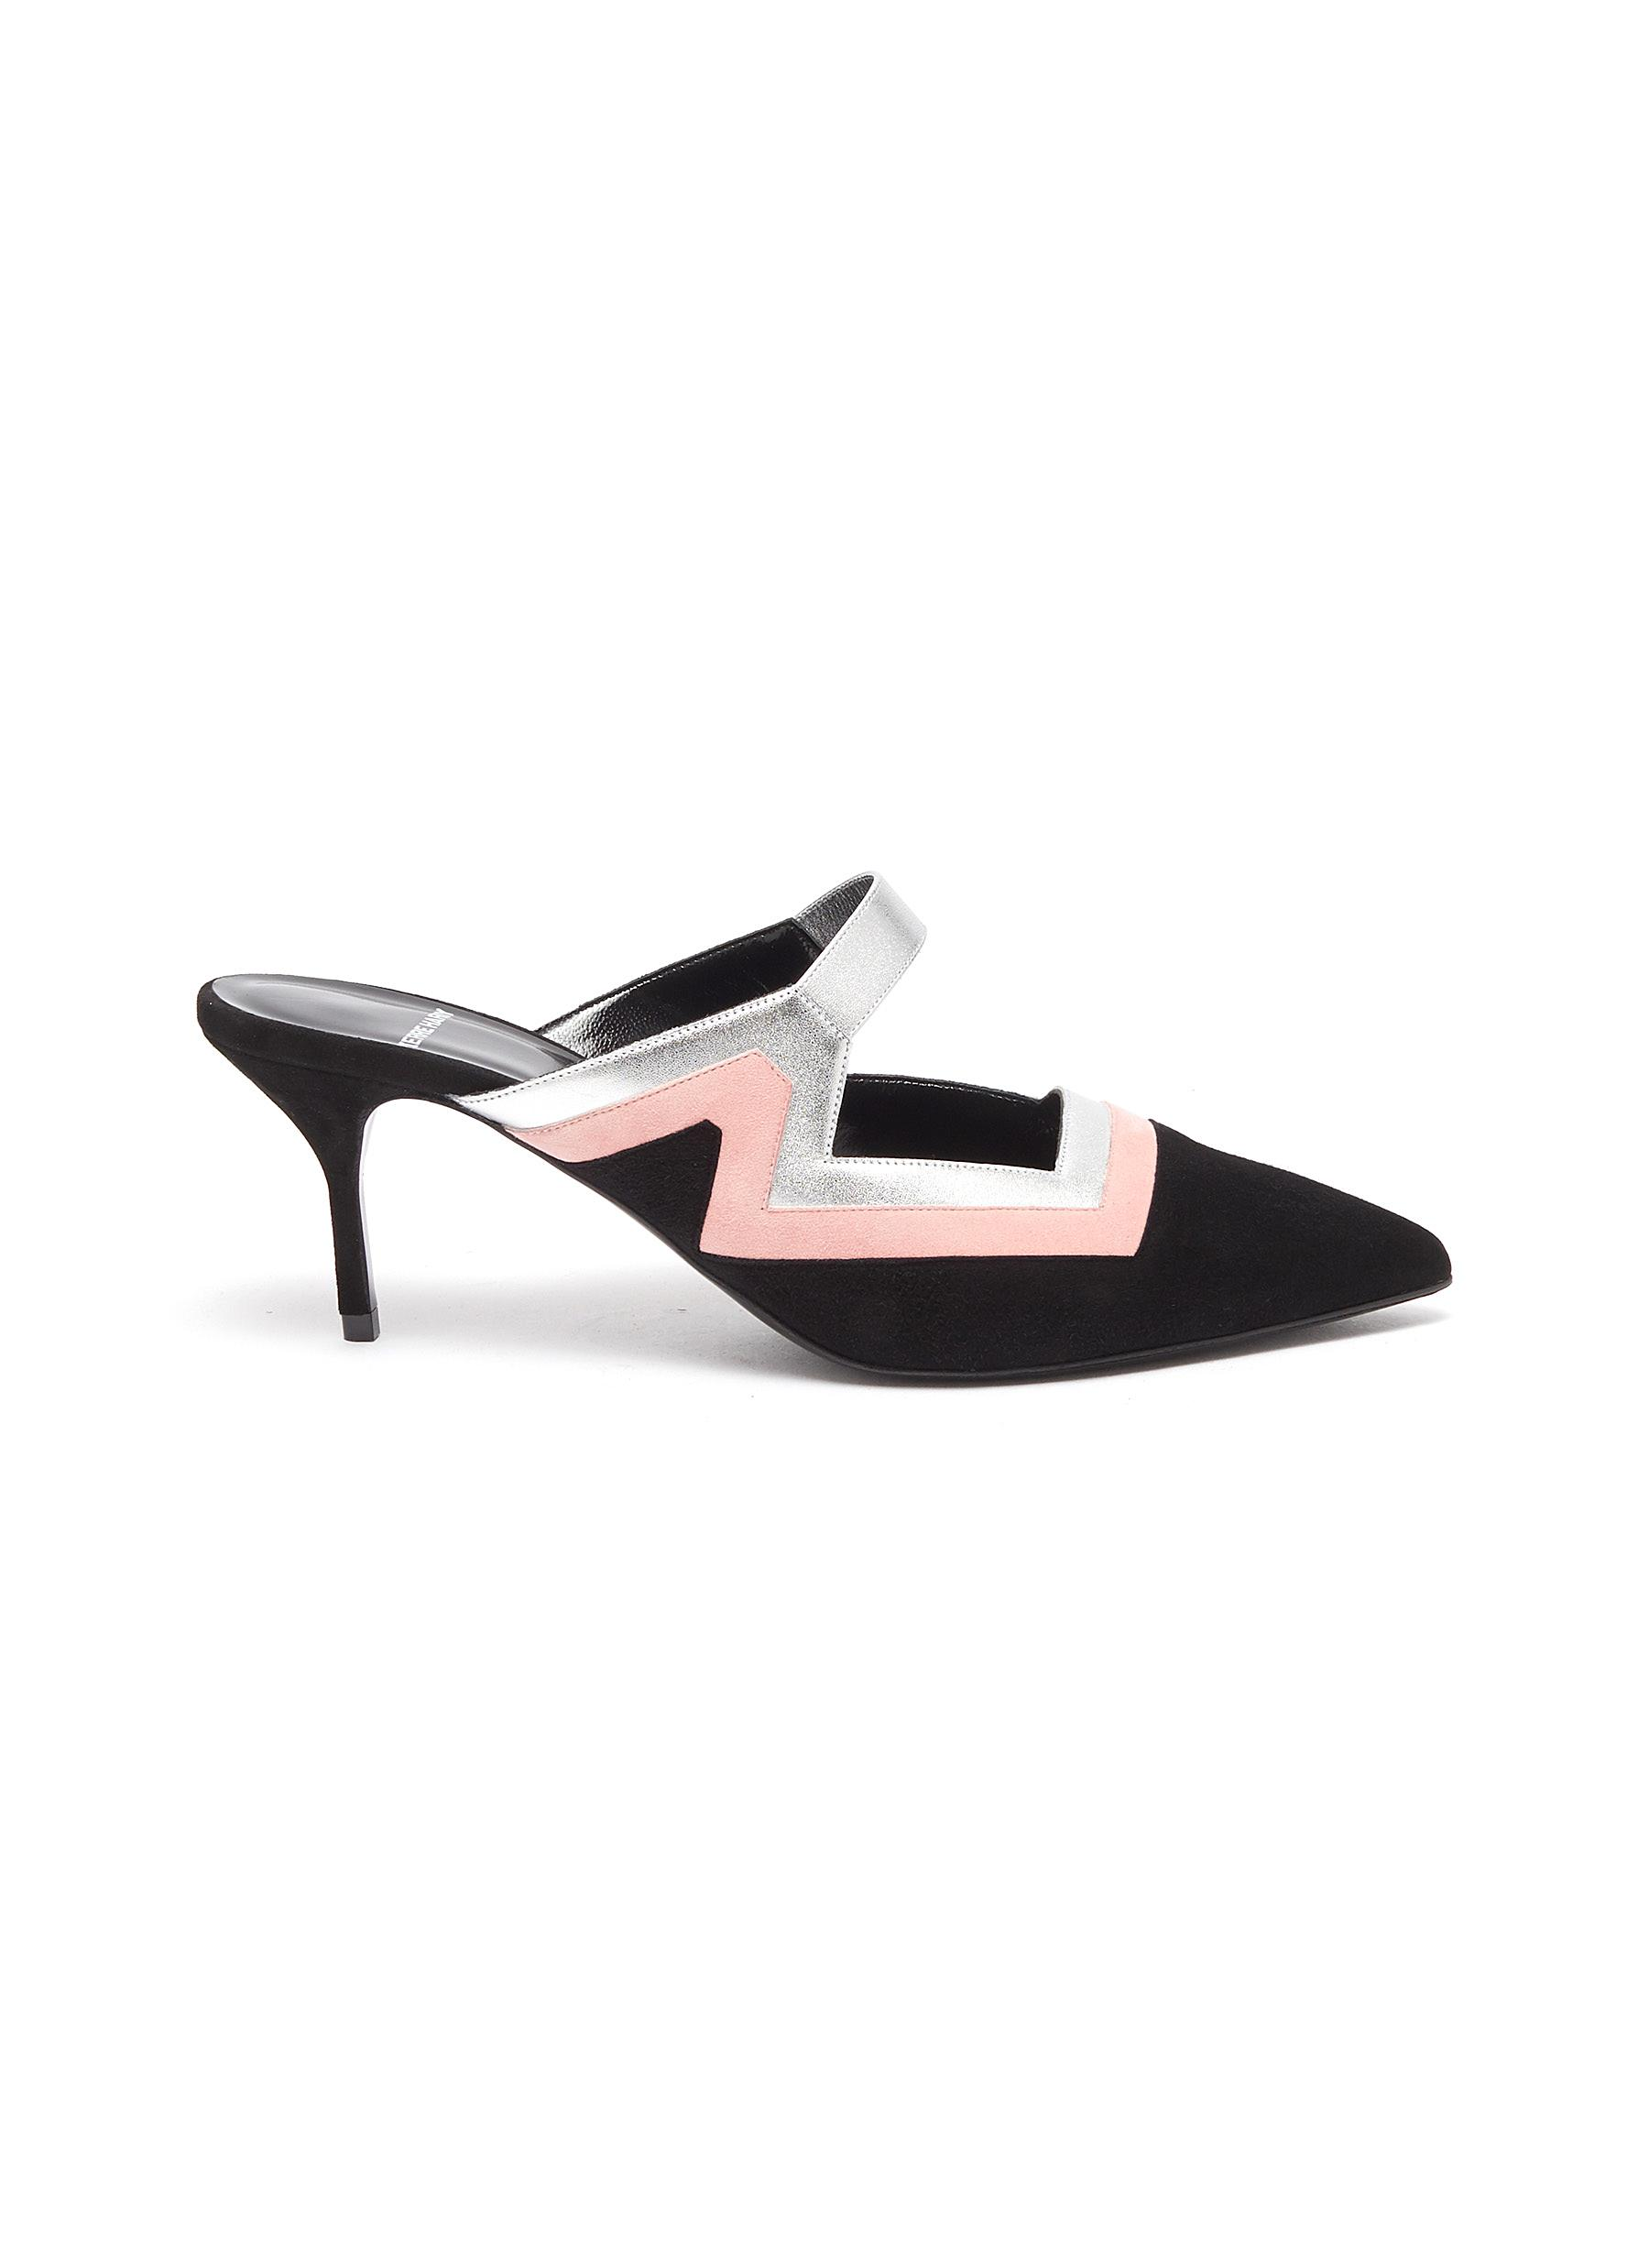 Vibe colourblock geometric cutout suede mules by Pierre Hardy